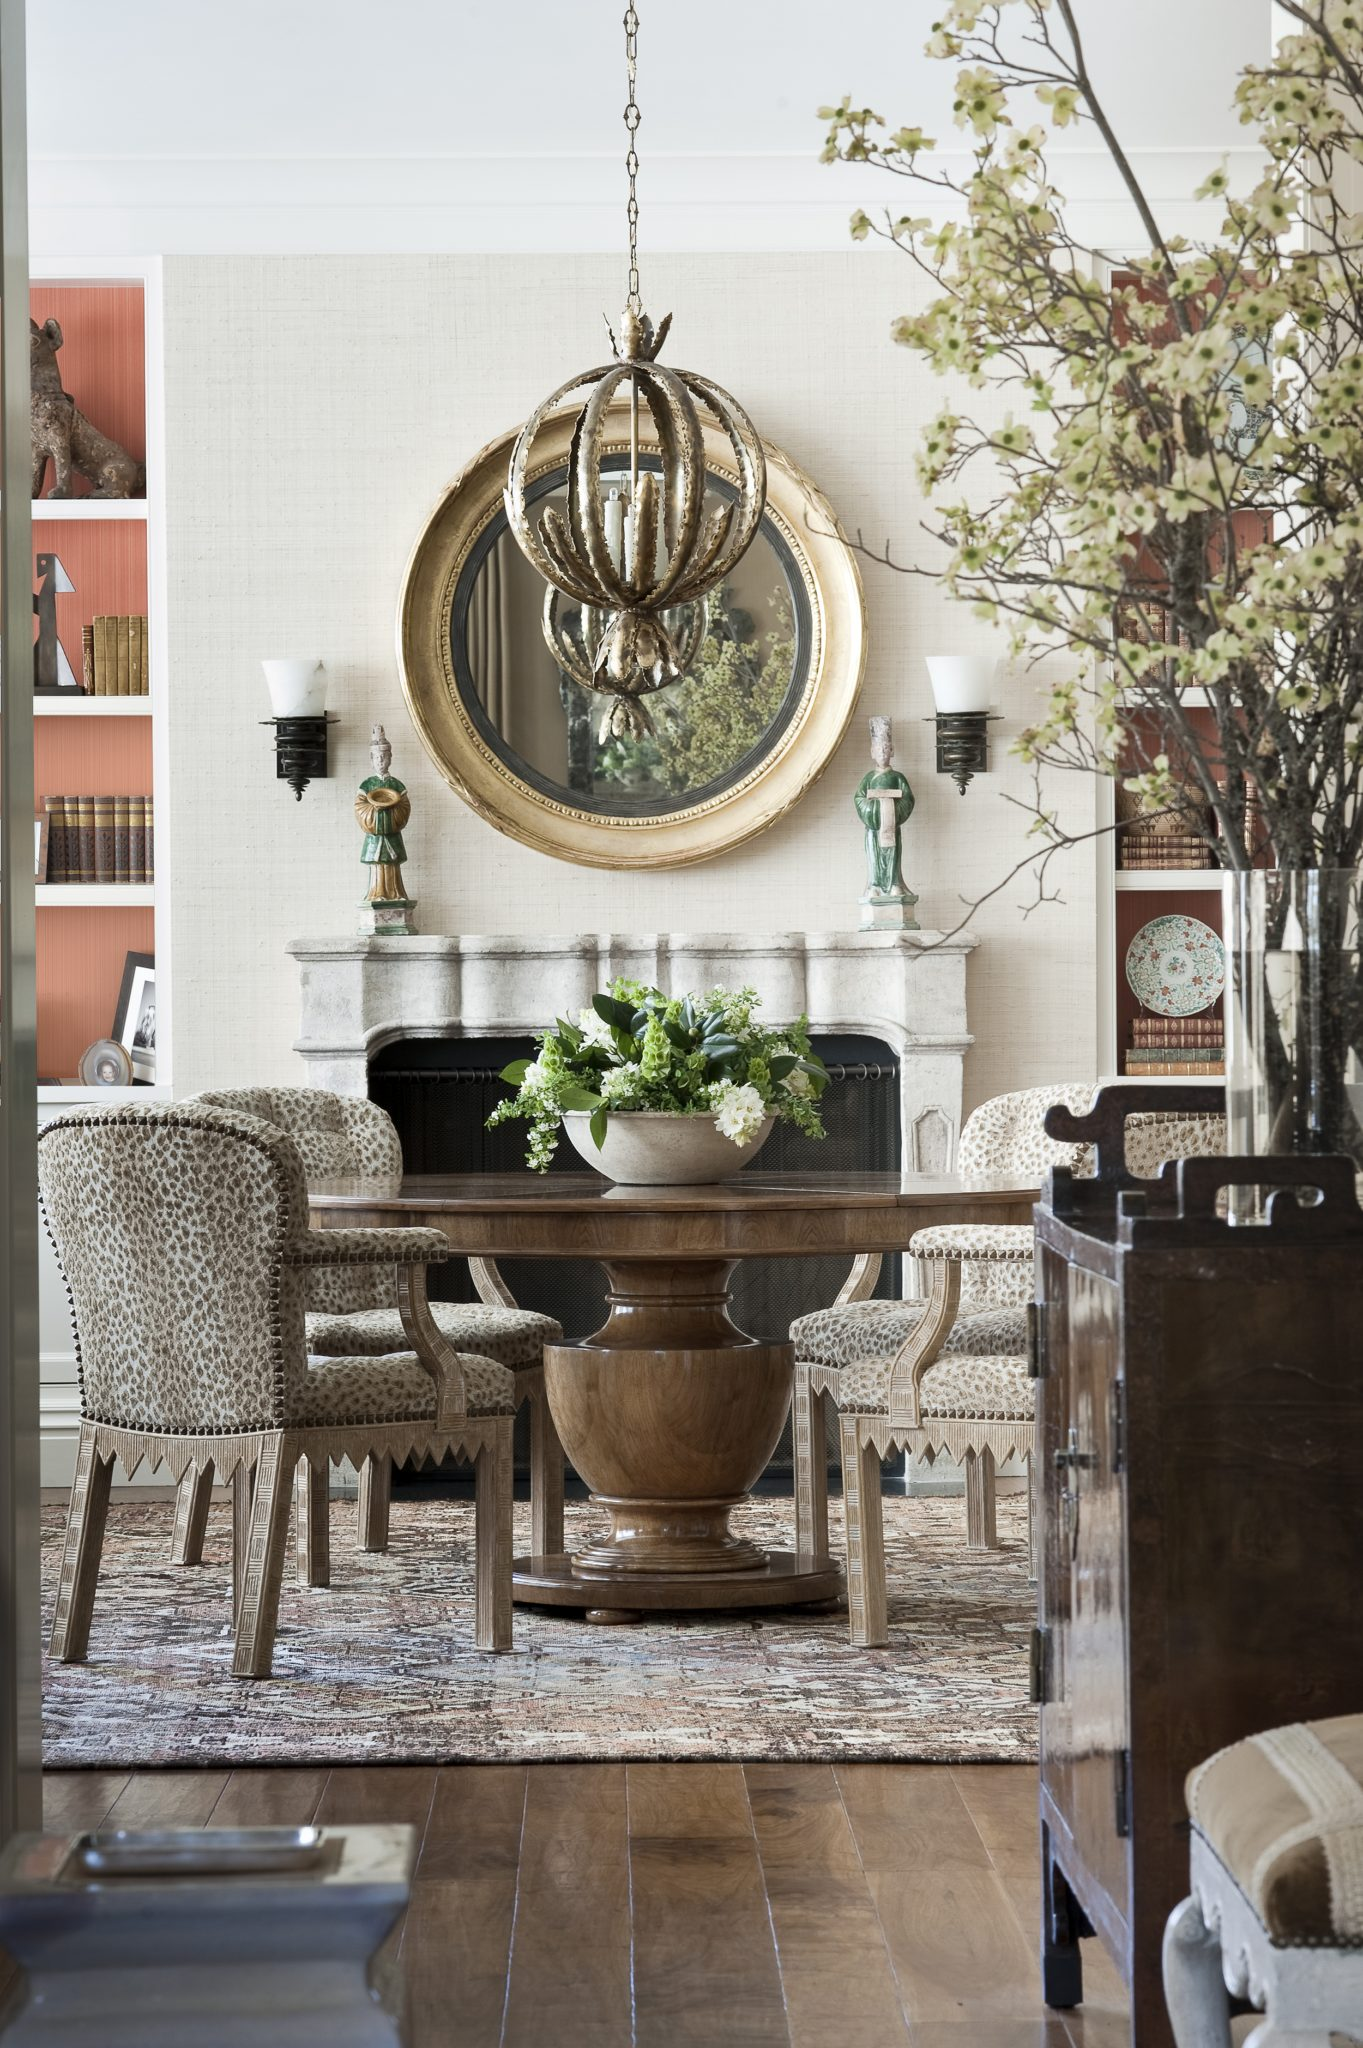 """""""Scale and proportion are key,"""" says Tucker.From the living room, the dining room is visible, and its design adds depth the rest of the space. The walnut pedestal dining table was custom designed by Tucker & Marks and fabricated by Rose Tarlow Melrose House. Tucker and her team upholstered chairs originally designed by Michael Taylor, which Tucker had safe-guarded in her personal collection, in fabric from Cowtan & Tout, and they added a braid trim from George Spencer Designs. The South Persian Bakhtiari carpet, circa 1900, underpins the design. Over the table, thebrutalist-style pendant light in an antiqued bronze finish was designed by Tom Greene for Feldman Lighting around 1970."""